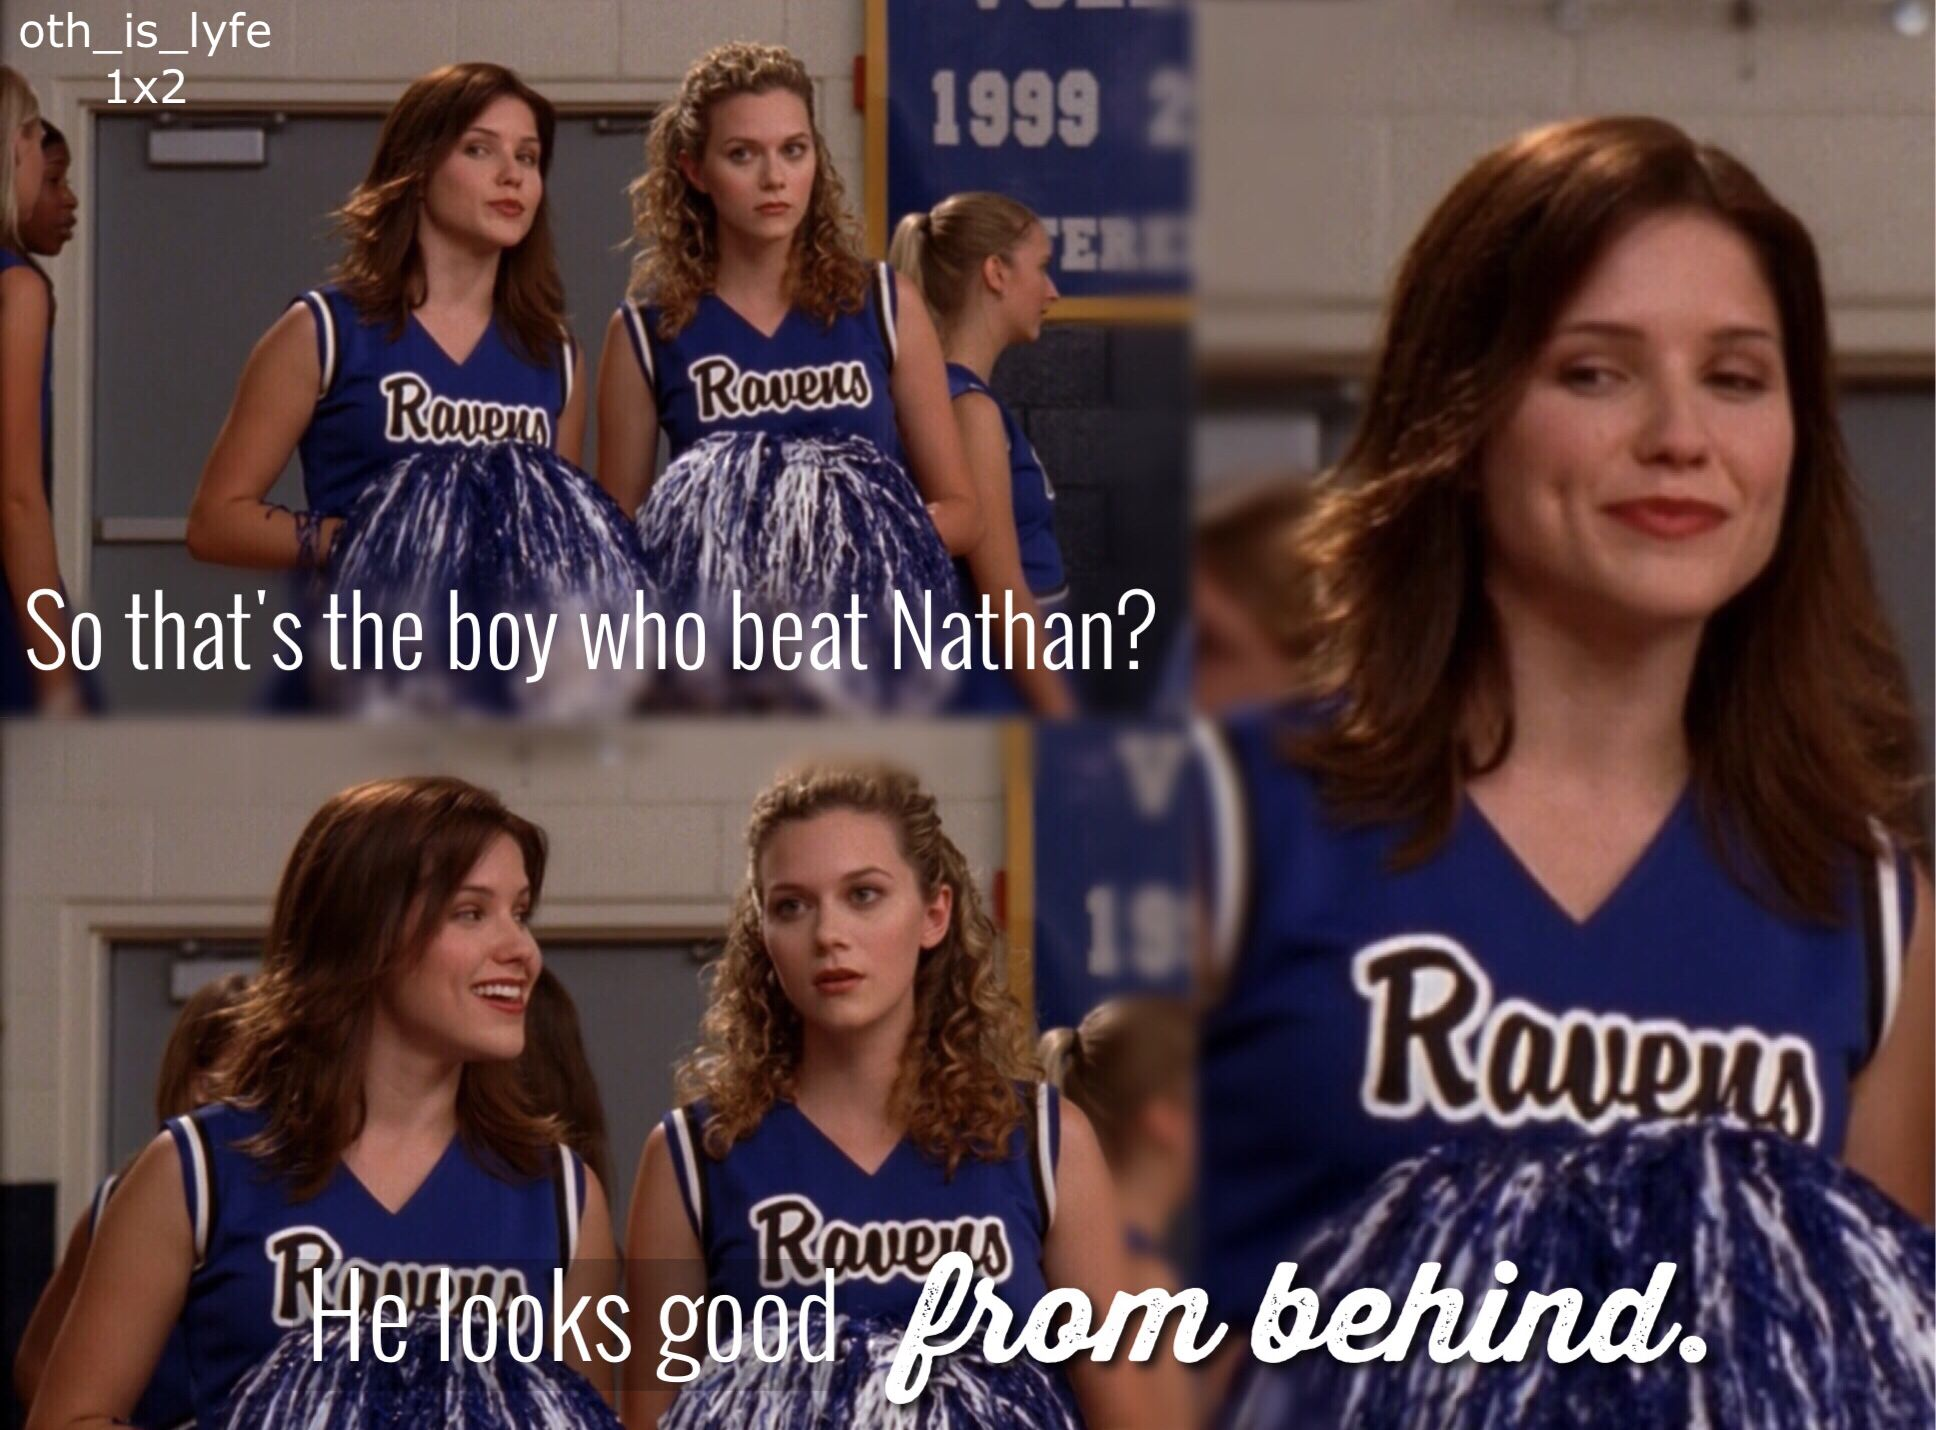 Brooke's first appearance and the first thing she ever said